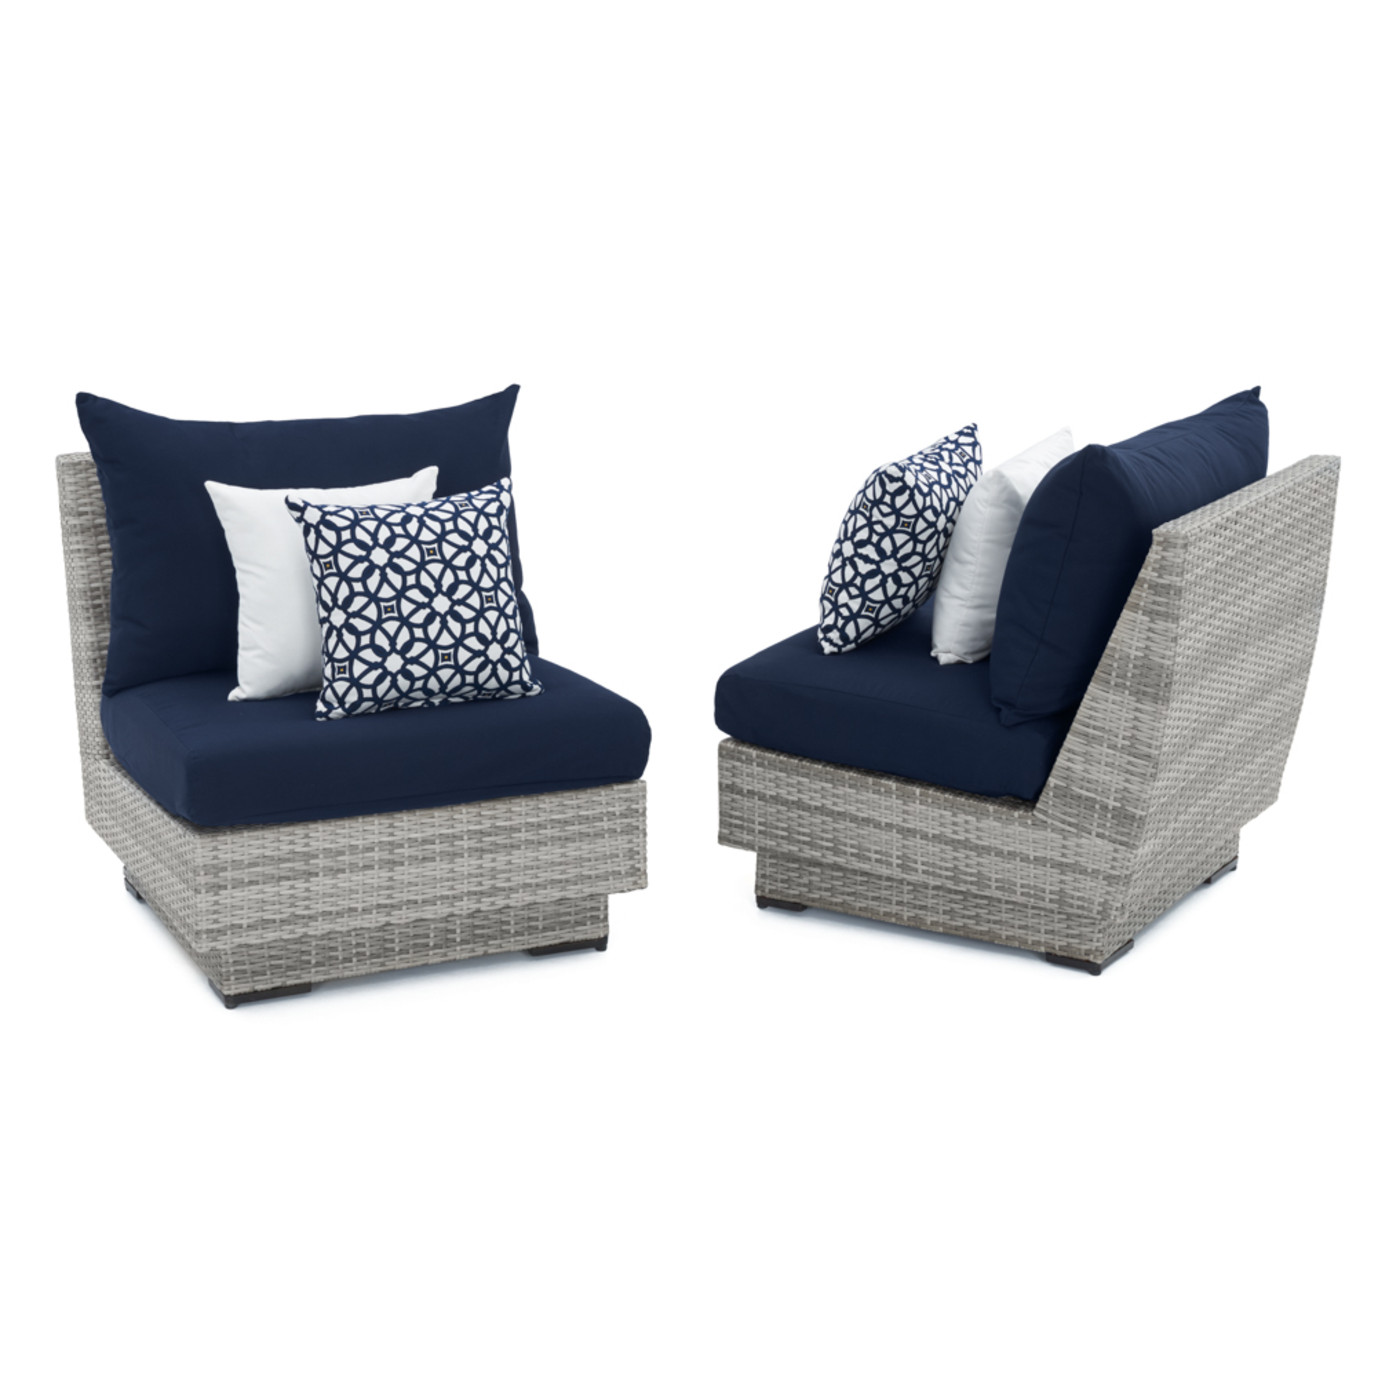 Cannes™ Armless Chairs - Navy Blue